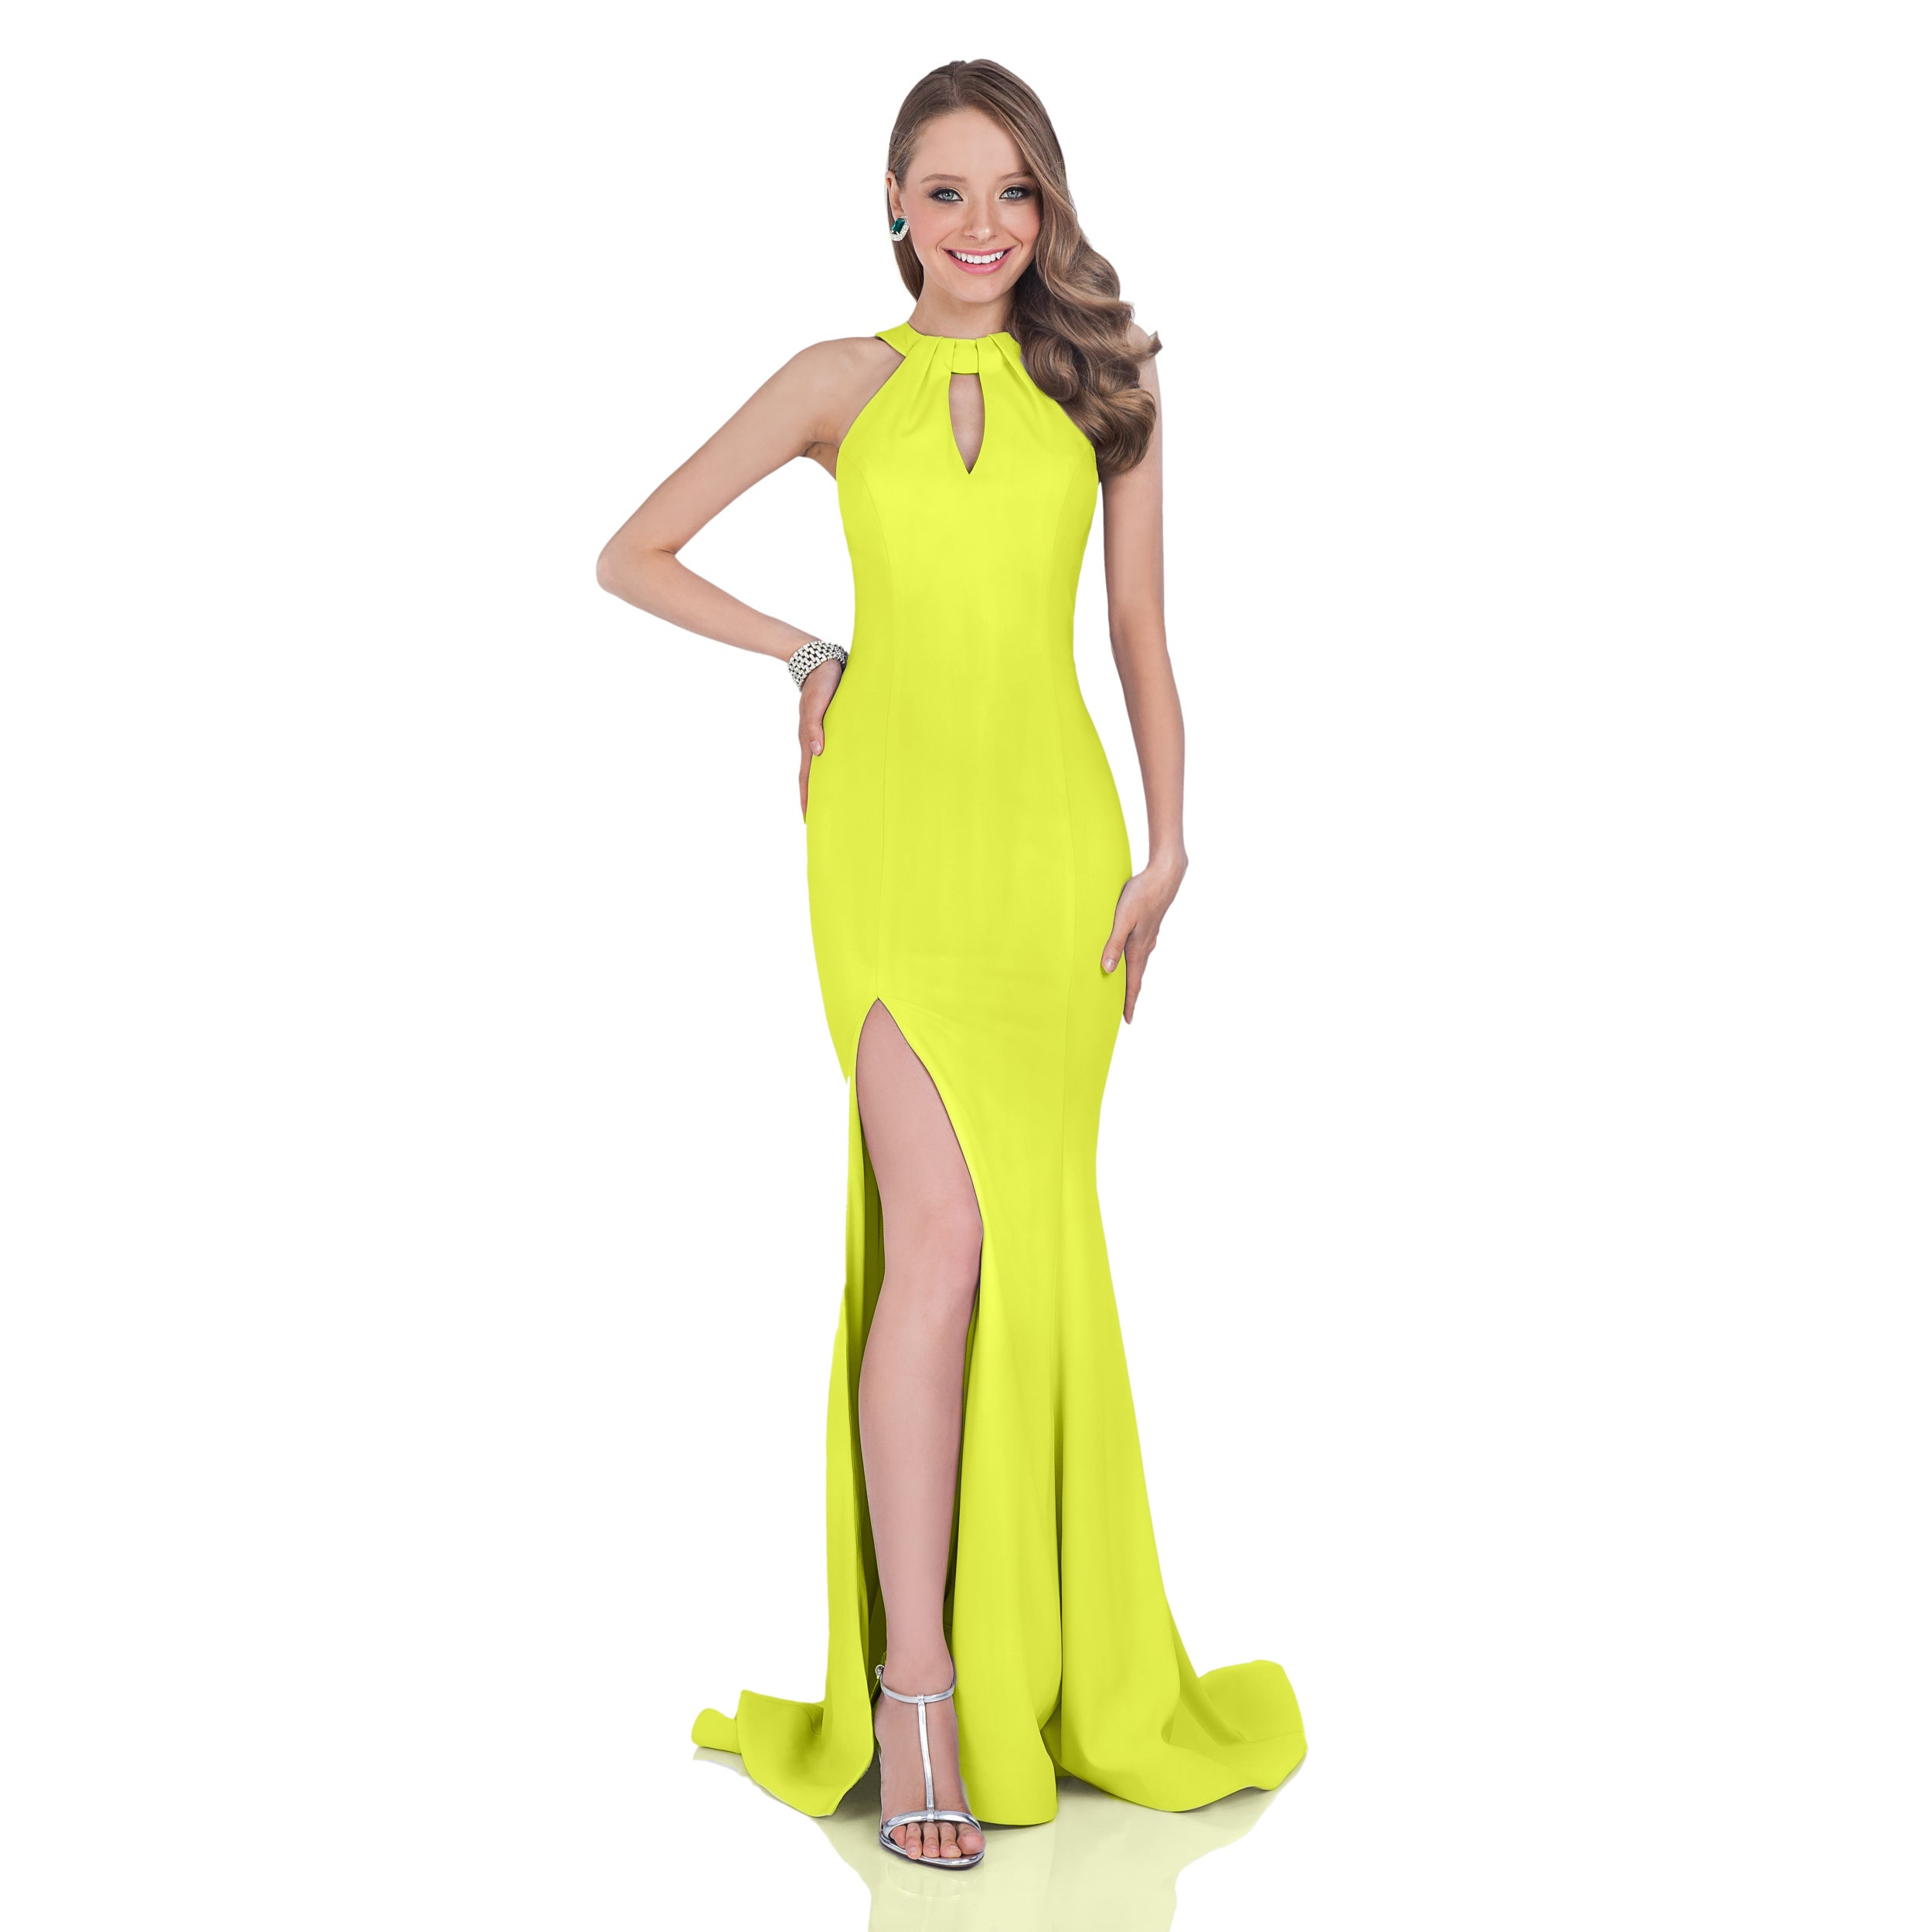 Buy Yellow Evening & Formal Dresses Online at Overstock.com | Our ...